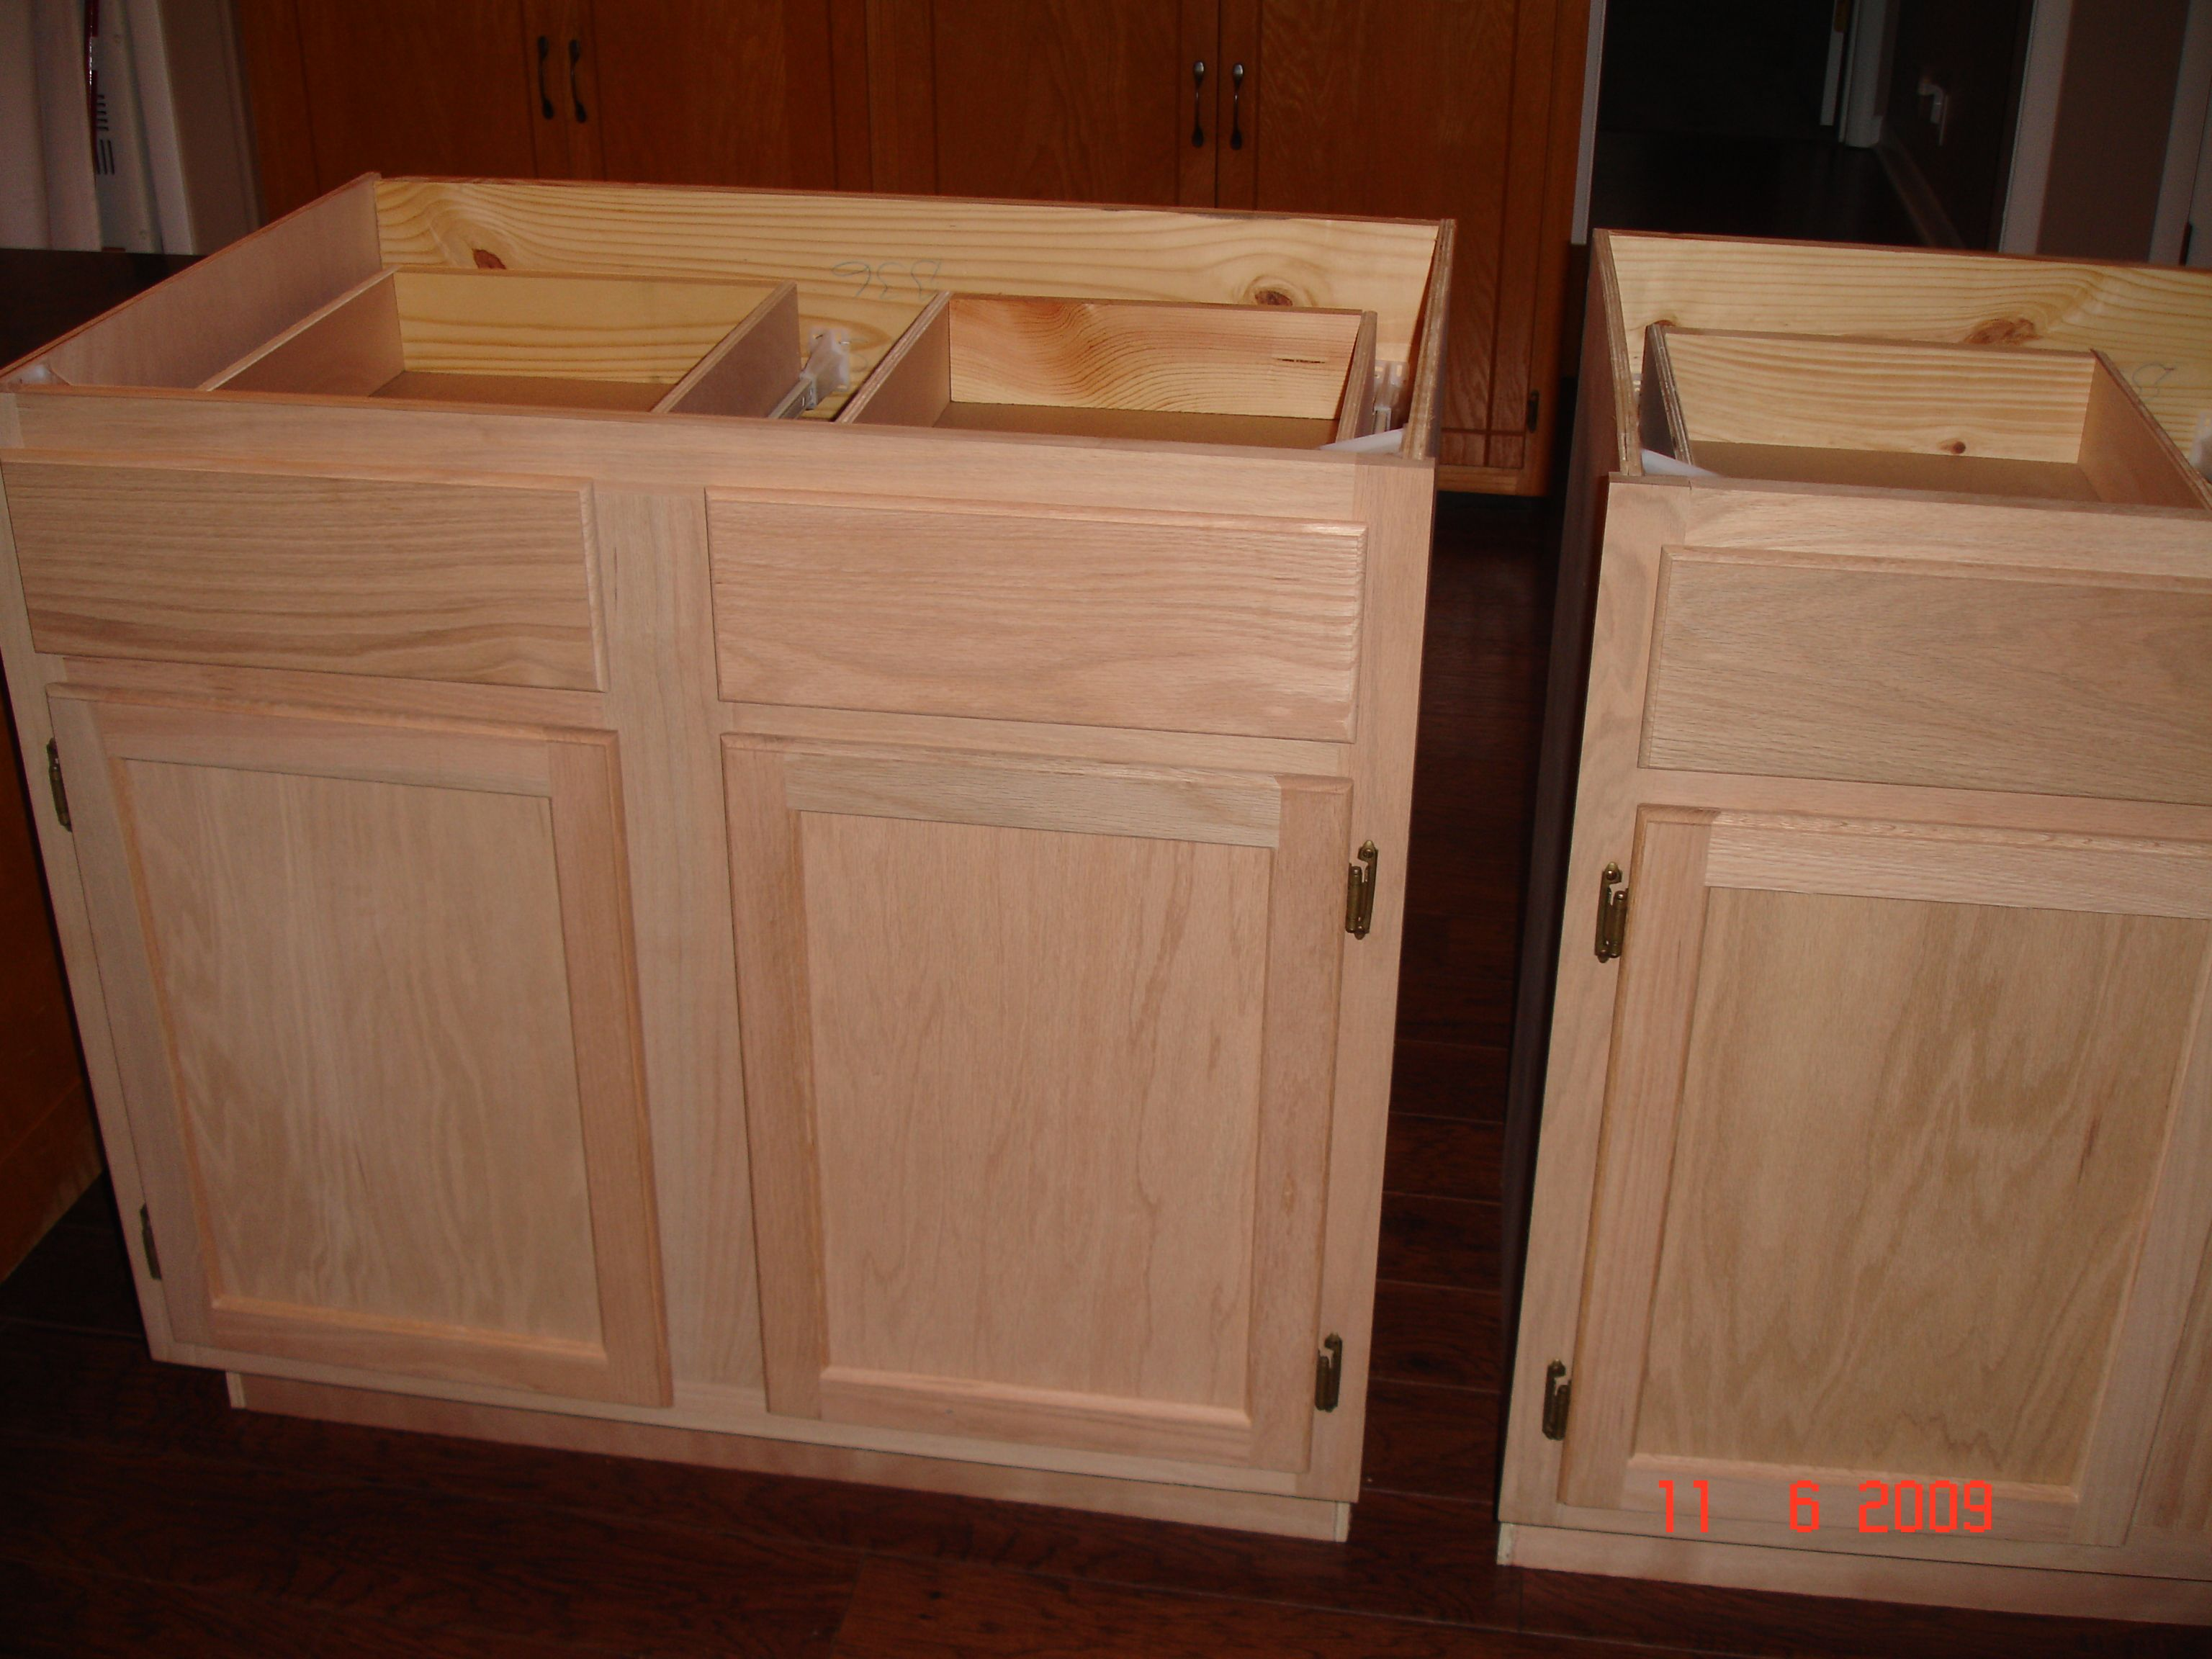 DIY Kitchen Island Made By Hubby & Me From Unfinished Kitchen